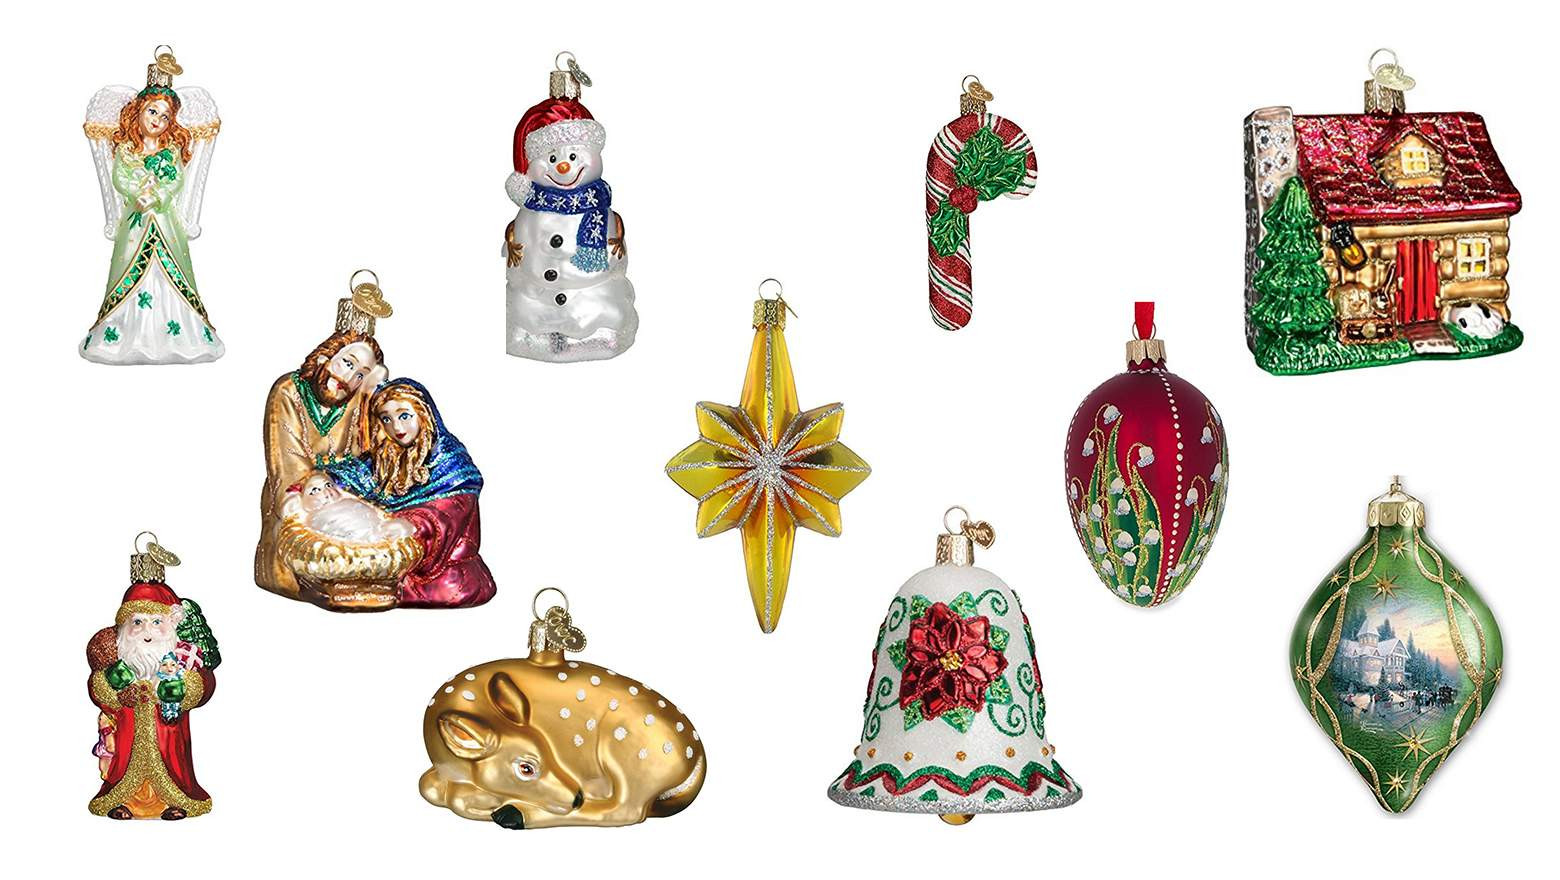 Christmas ornaments Fresh top 10 Best Old World Christmas ornaments Of Incredible 48 Images Christmas ornaments